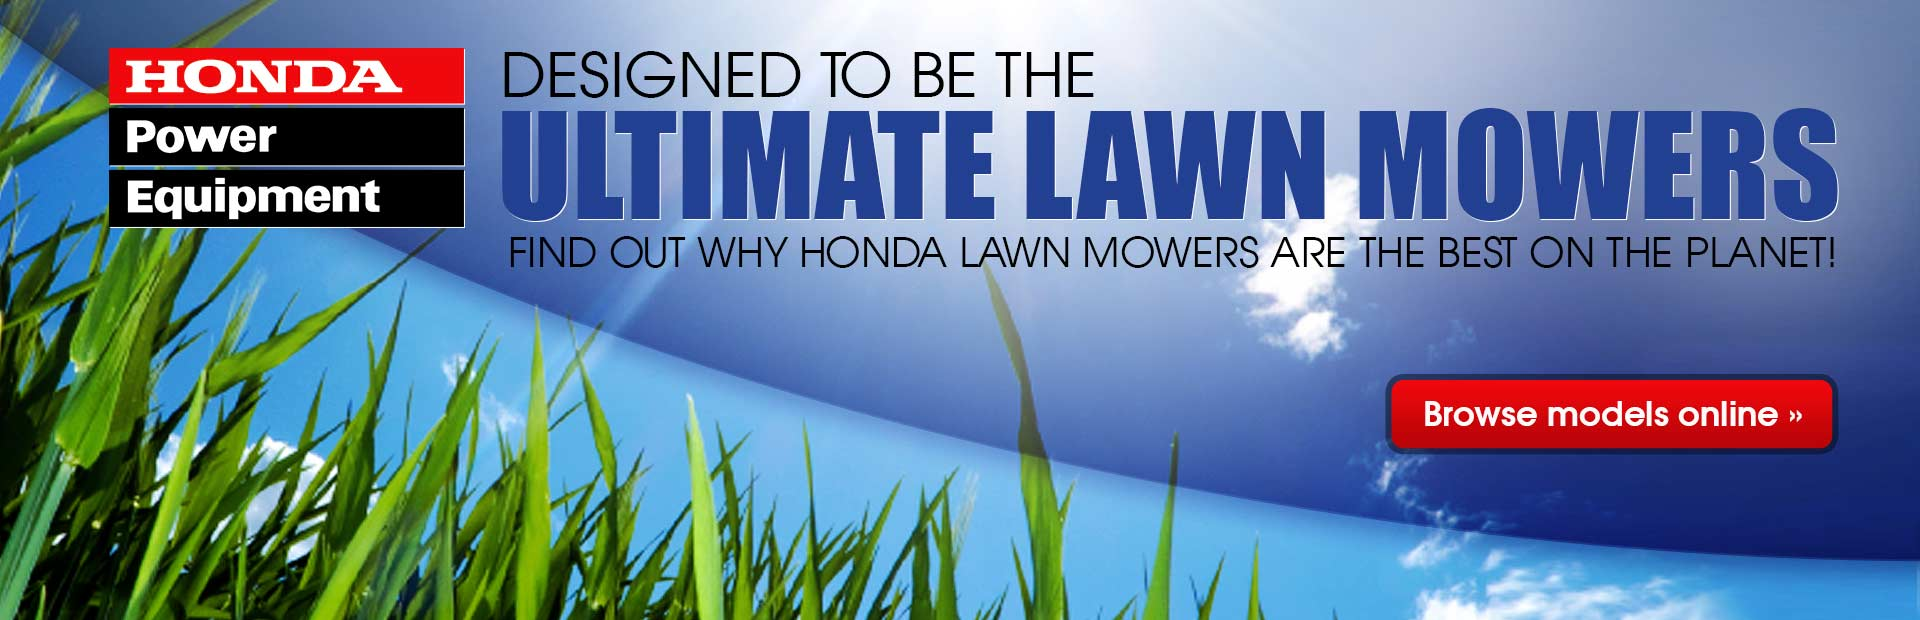 Nice Honda Lawn Mowers Are Designed To Be The Ultimate Lawn Mowers.